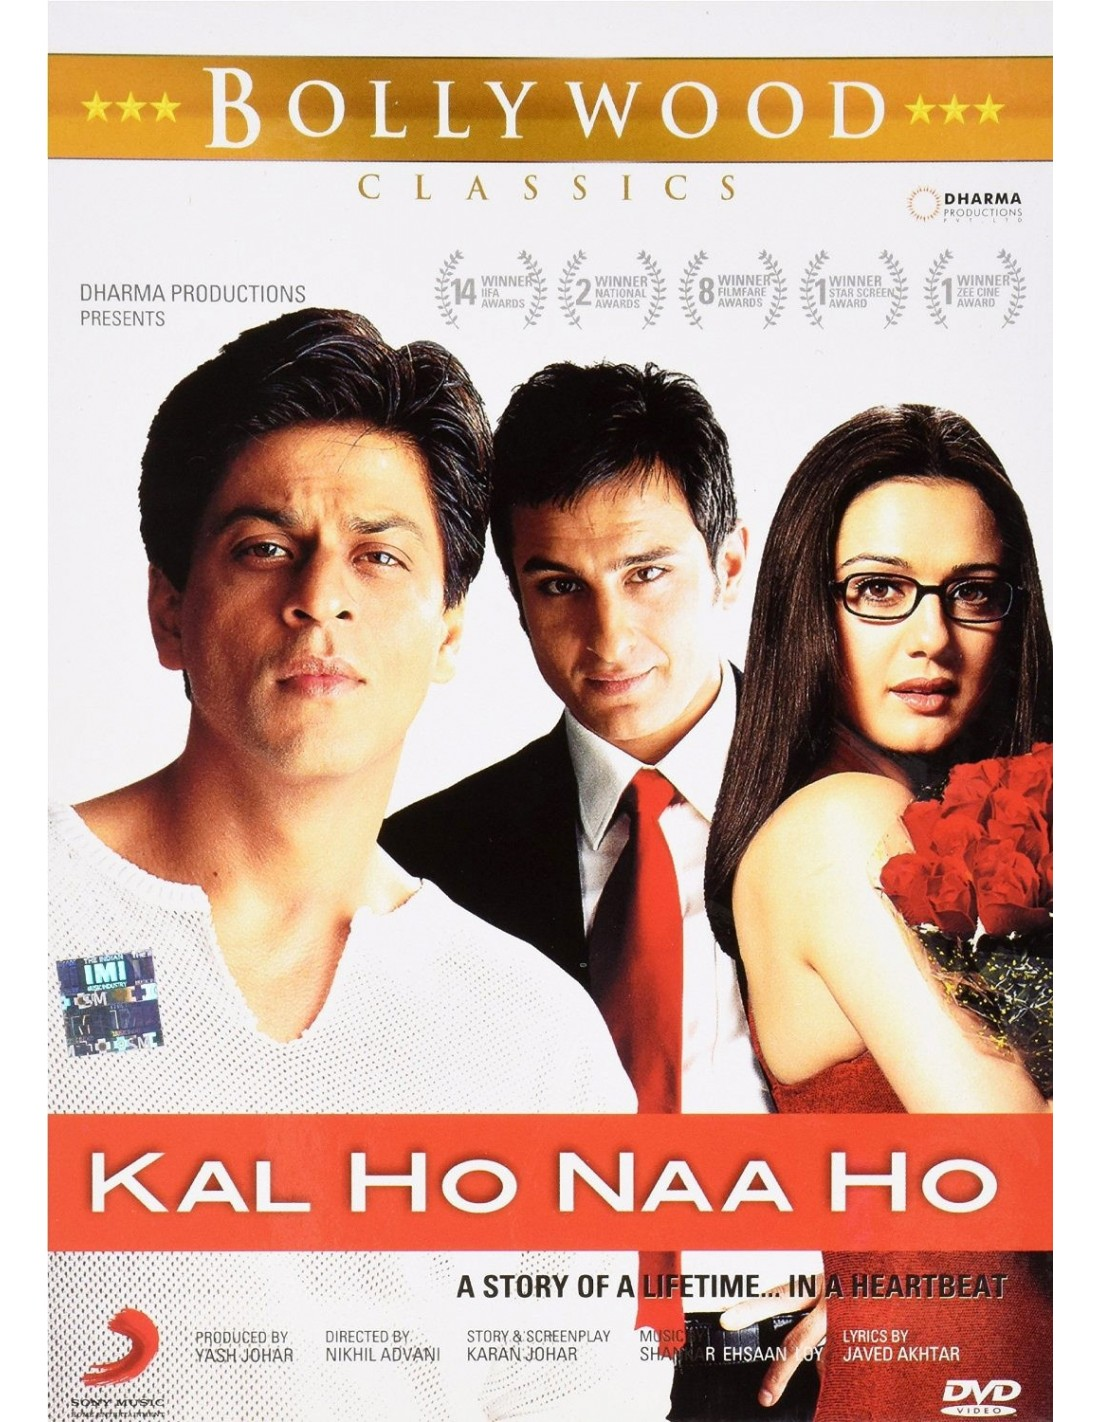 Kal ho na ho, a movie which moved hearts of millions of people and